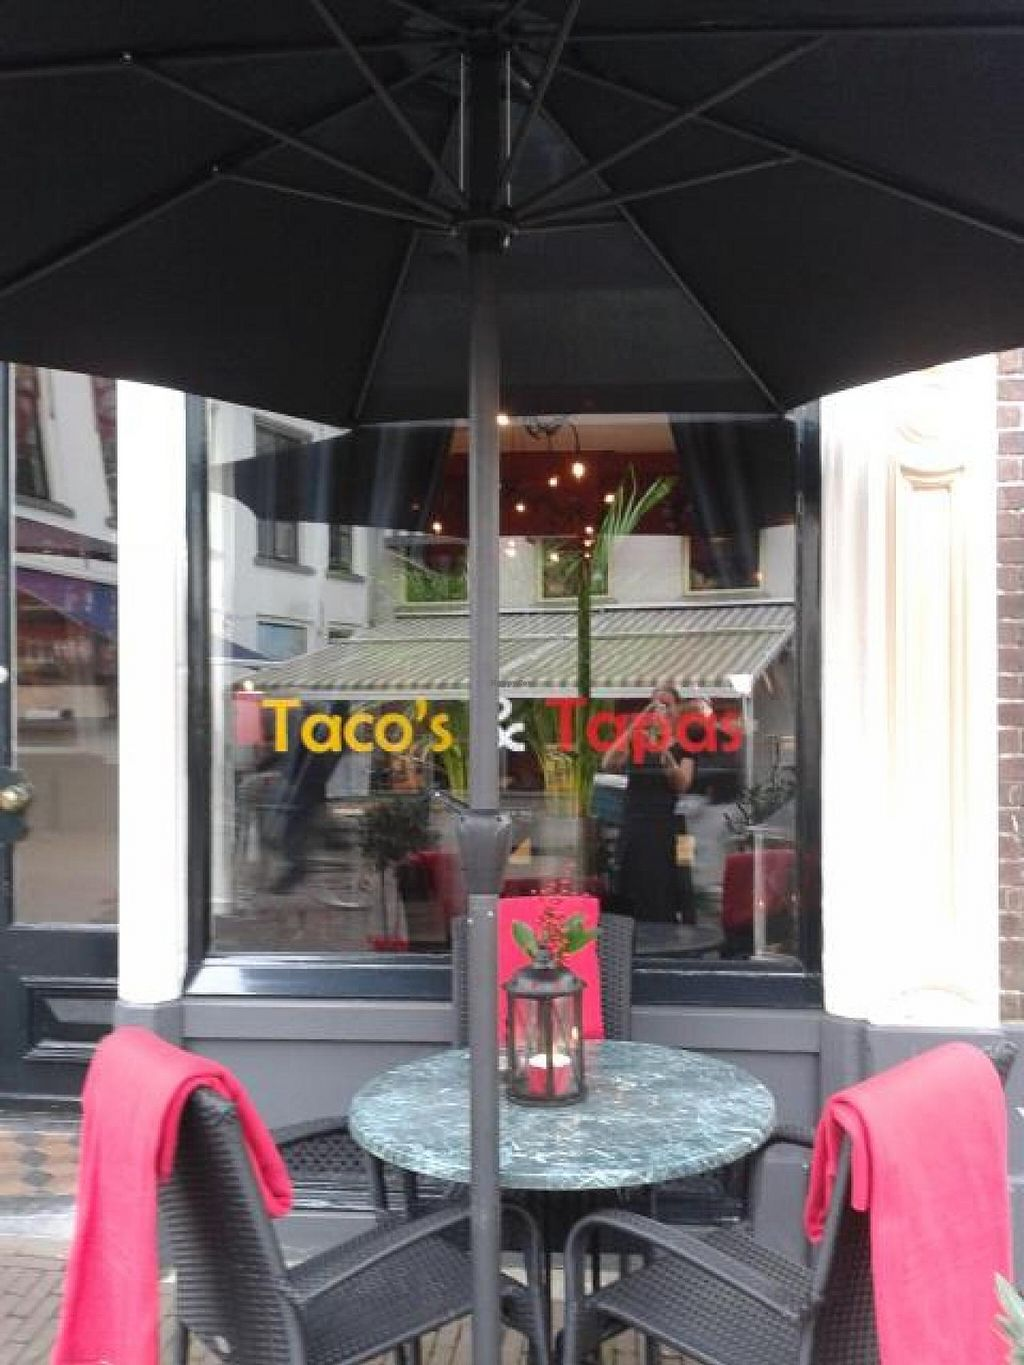 "Photo of Tacos en Tapas  by <a href=""/members/profile/samsammetje"">samsammetje</a> <br/>Welcome! We are open tuesday till sunday. Our kitchen is open on tuesday, wednesday and sunday from 5 pm and thursday, Friday and saturday from 12 pm <br/> November 29, 2014  - <a href='/contact/abuse/image/53032/86709'>Report</a>"